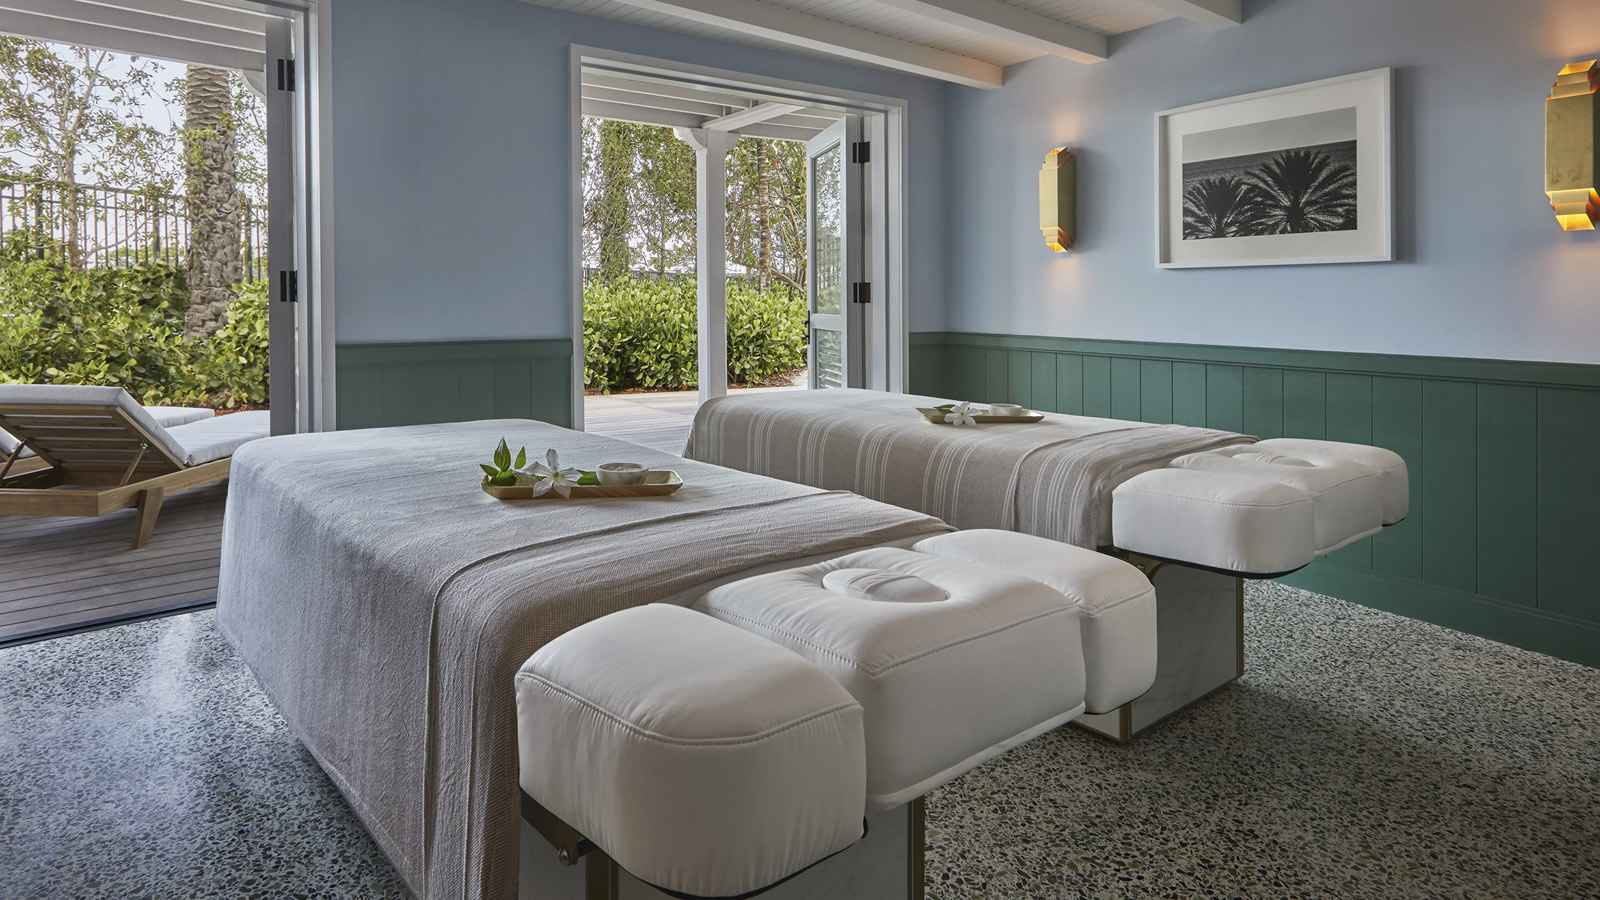 Surfside Hotel Introduces a Luxury Spa